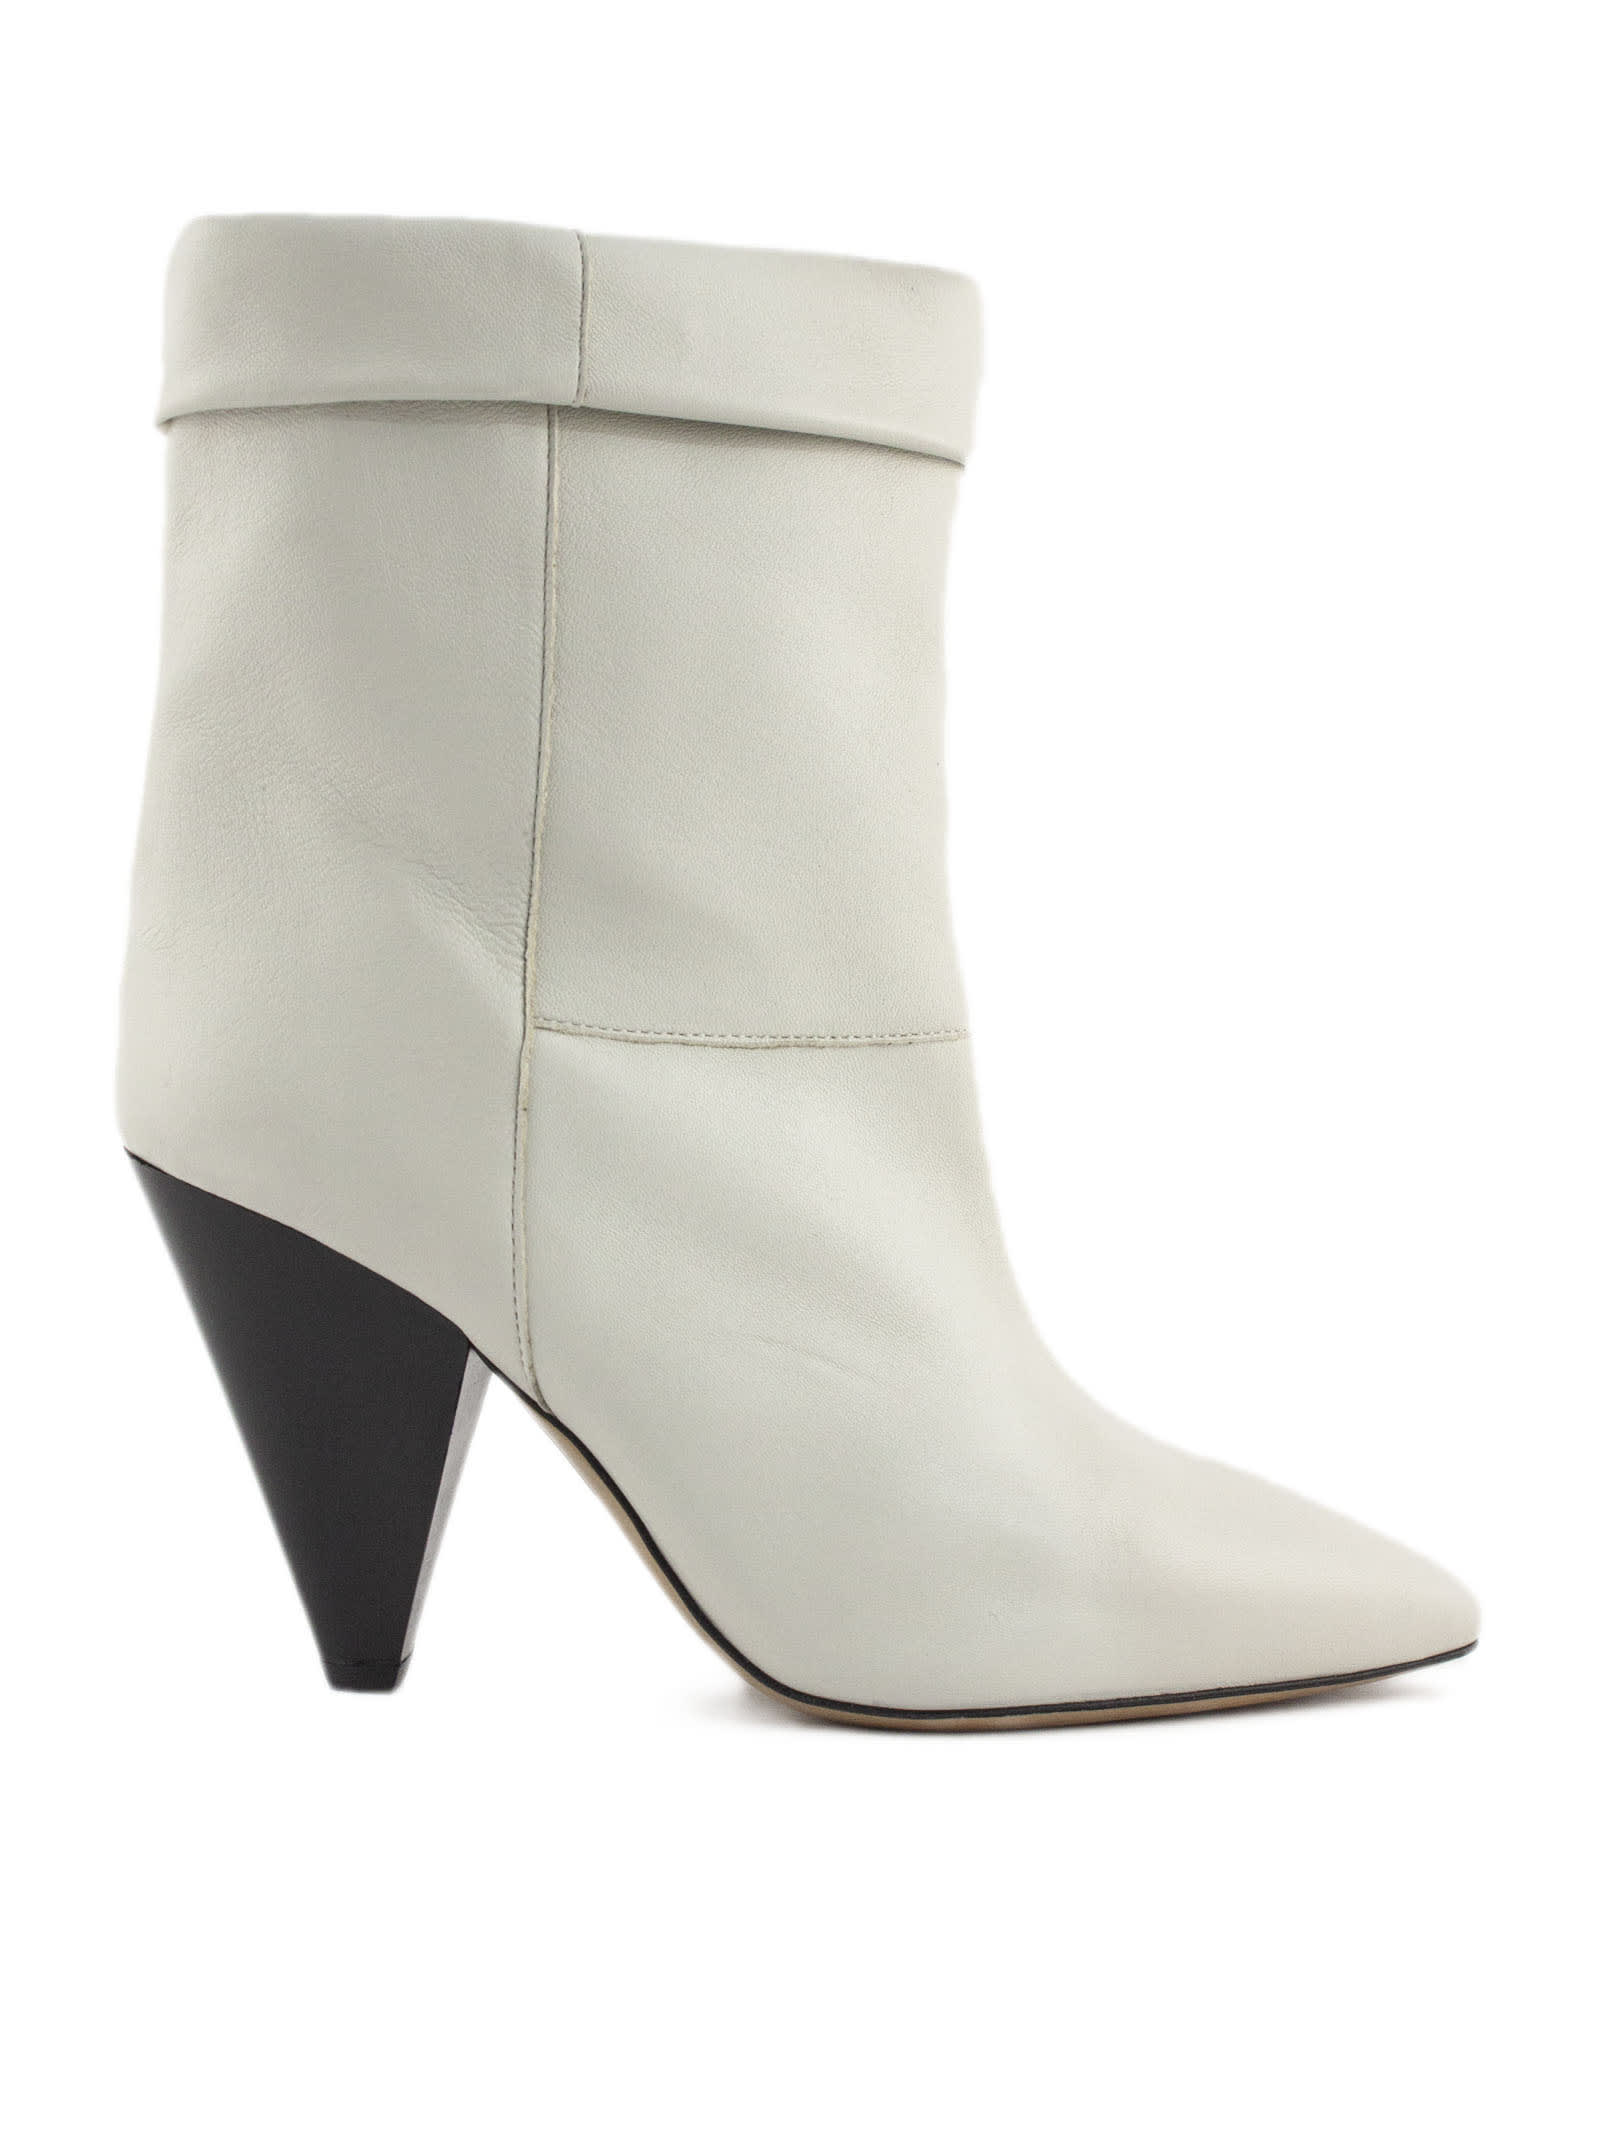 Isabel Marant White Tapered Heel Boots